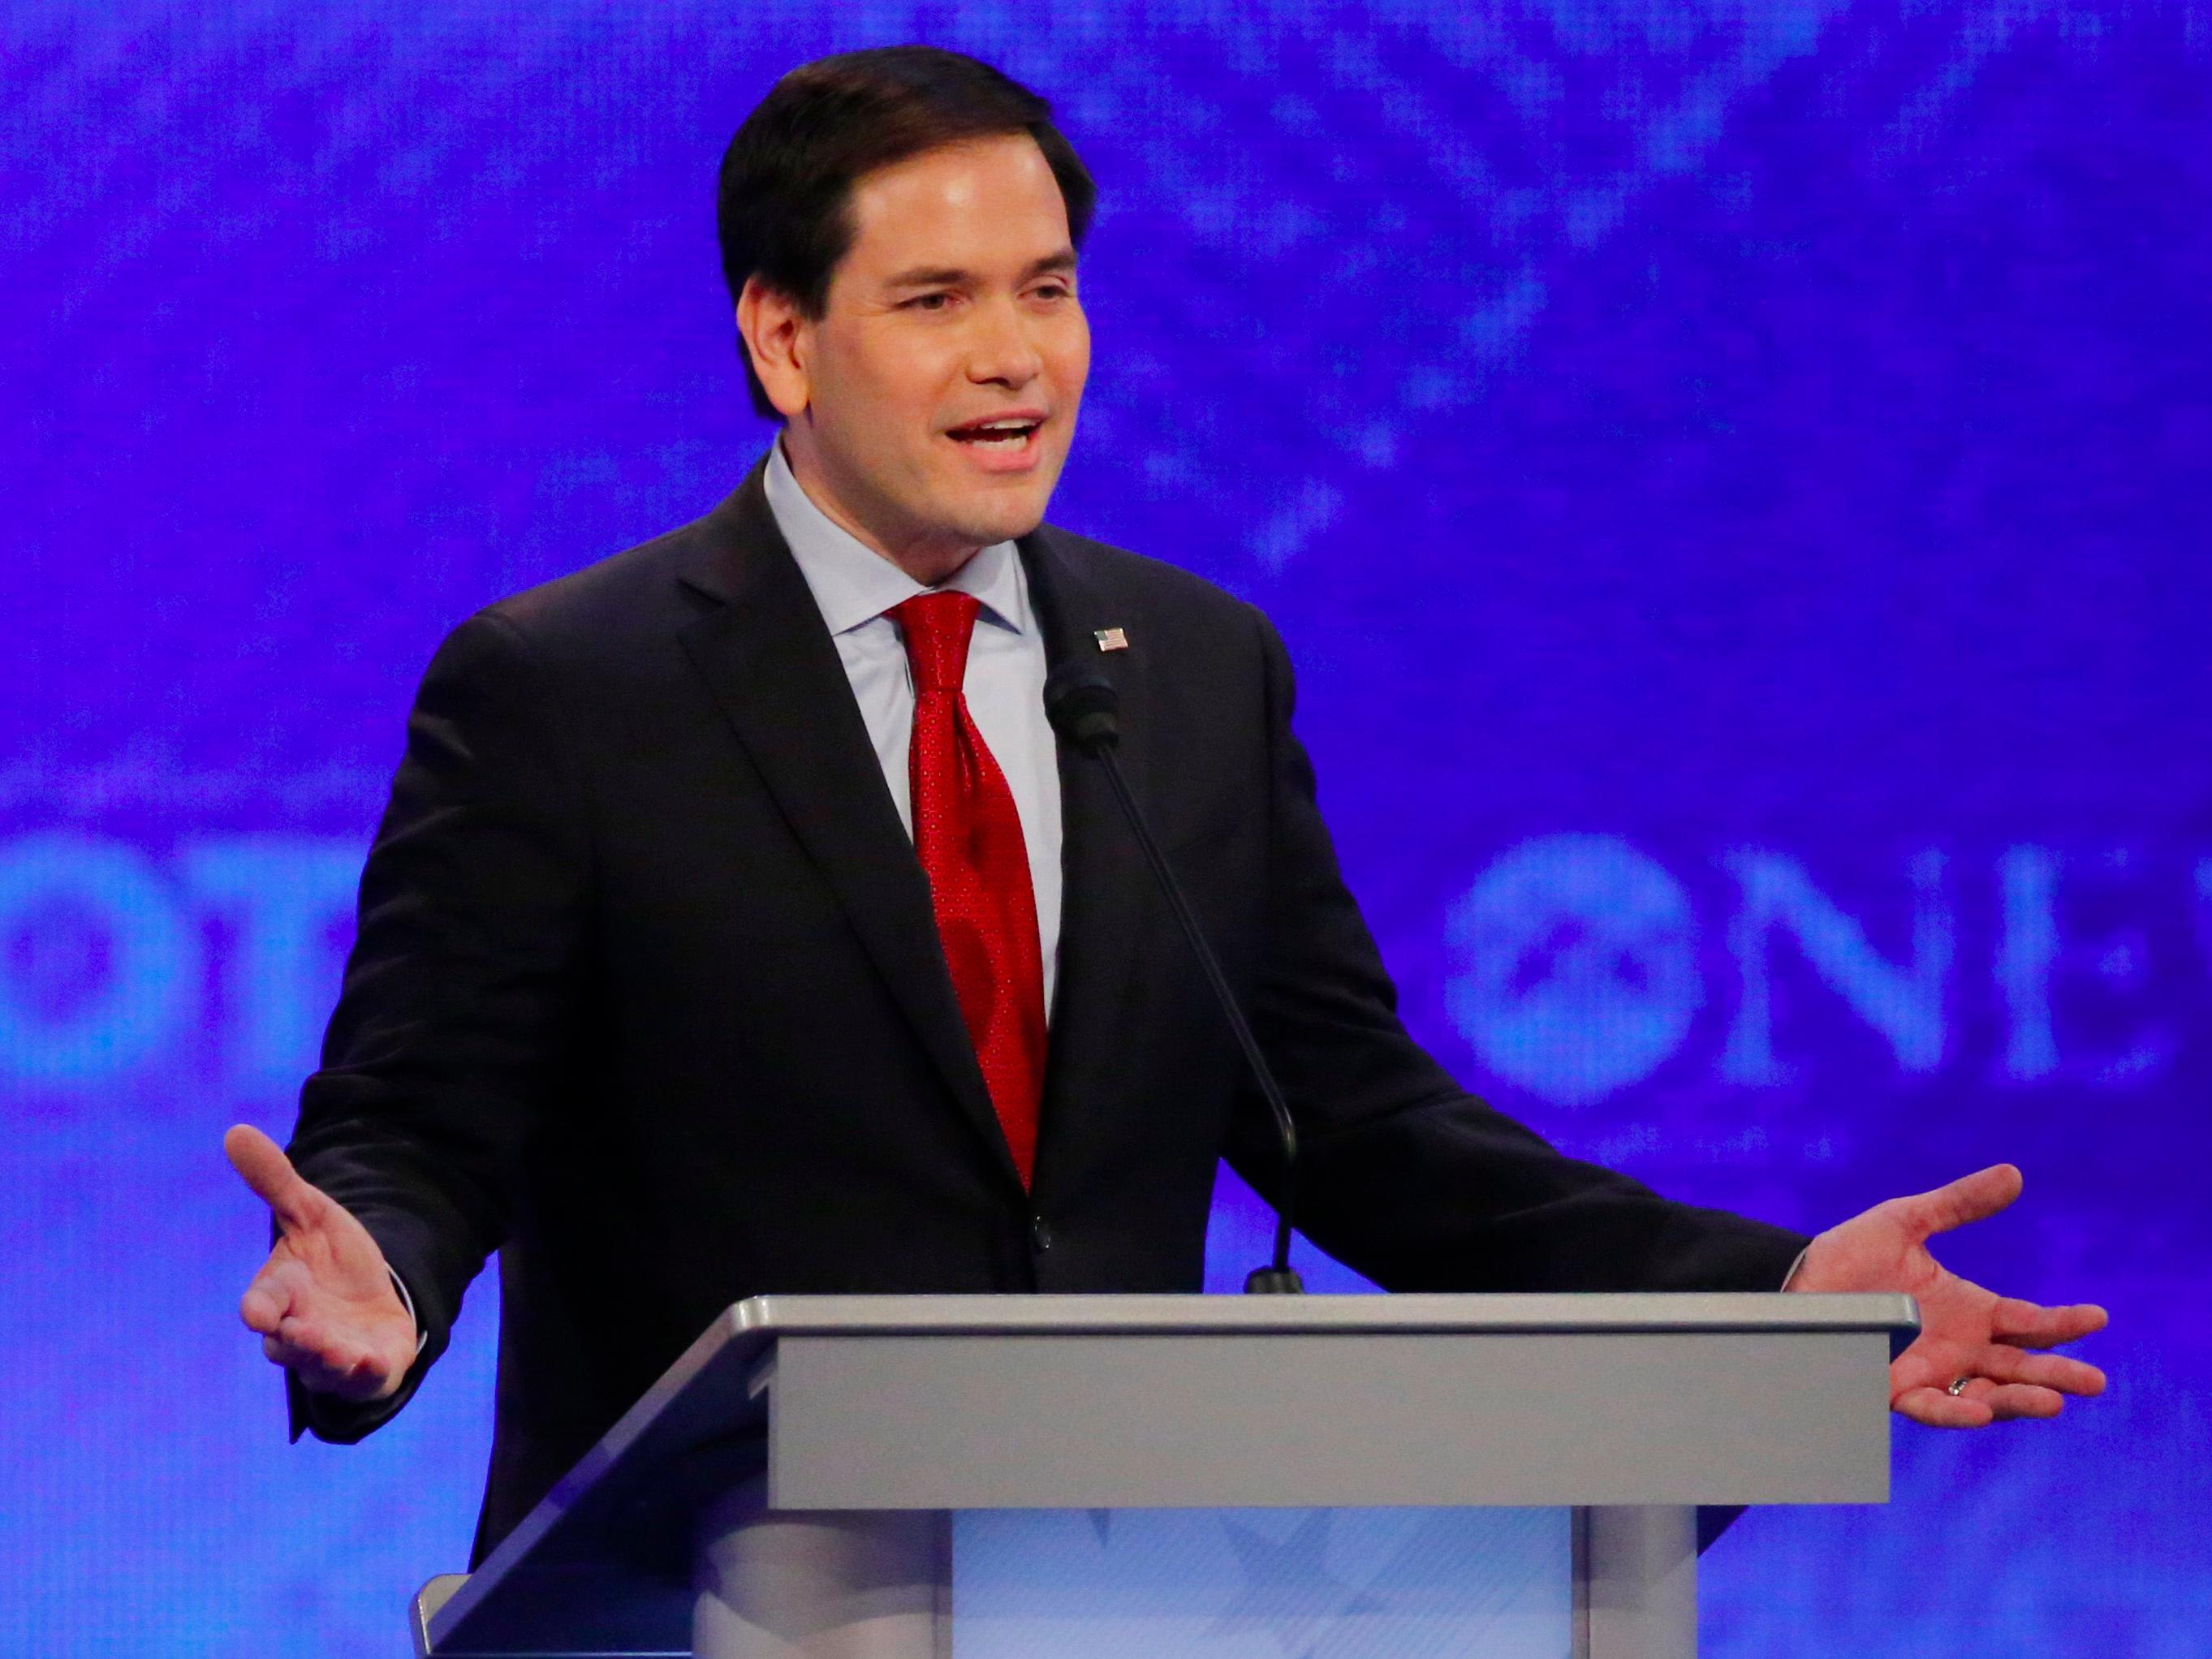 'MARCOBOT MALFUNCTIONS': Everyone's saying Rubio had a brutal debate night